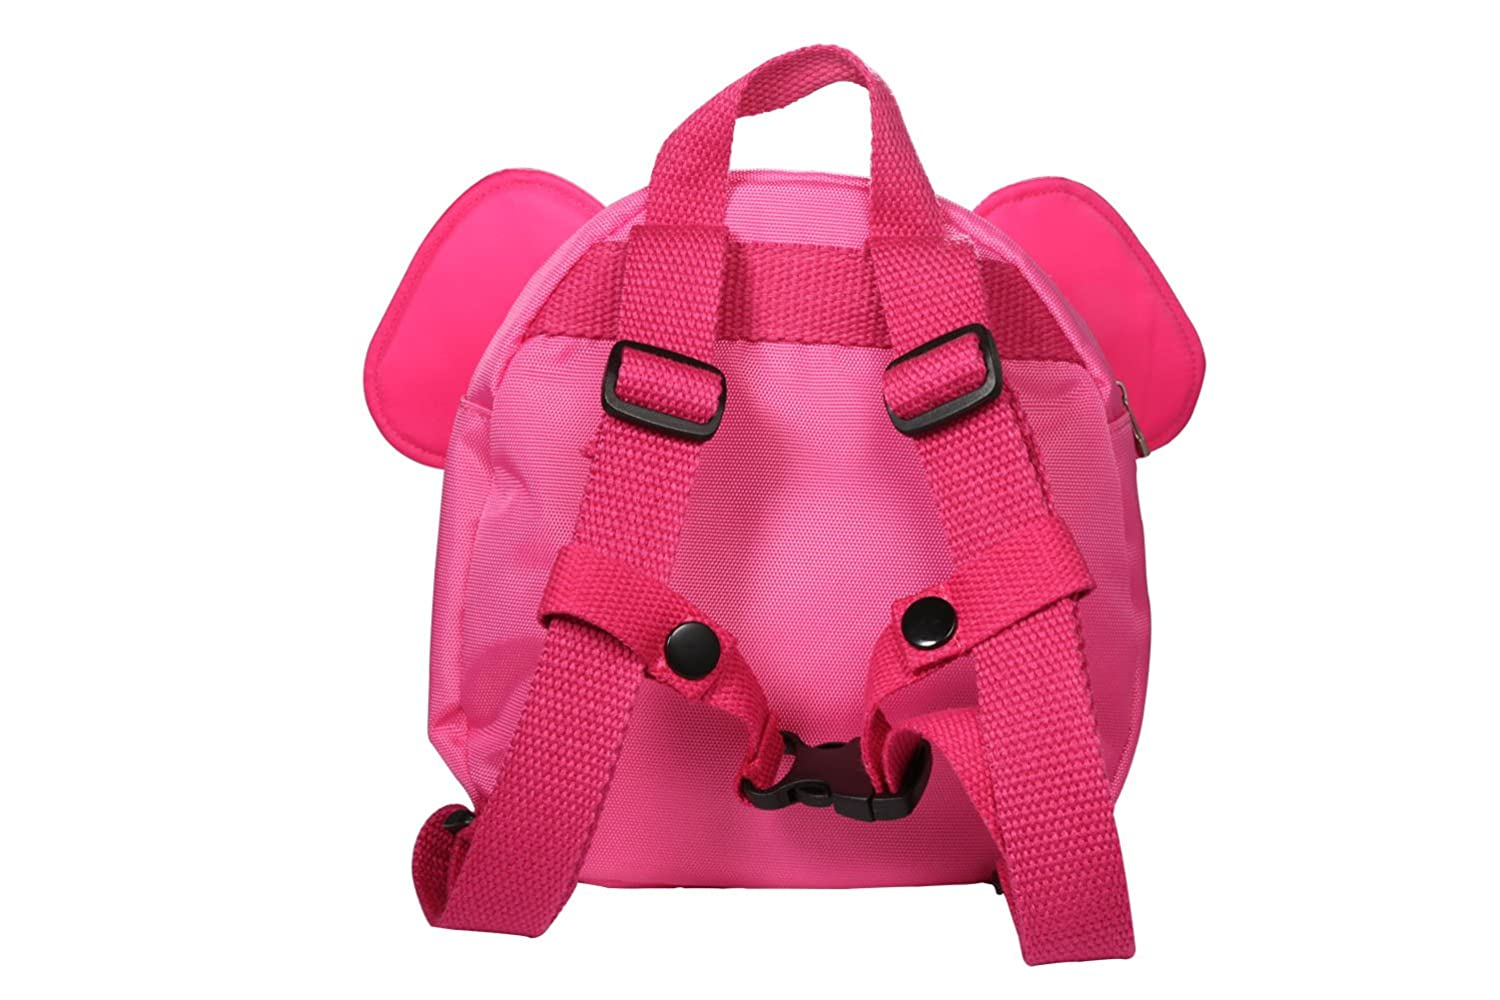 Pink WINSHEA Baby Toddler Safety Harness Backpack Child Kids Strap Shoulder Backpack Bag with Reins Leash Rucksack Harness Walkers Tether Belt Butterfly with Wings